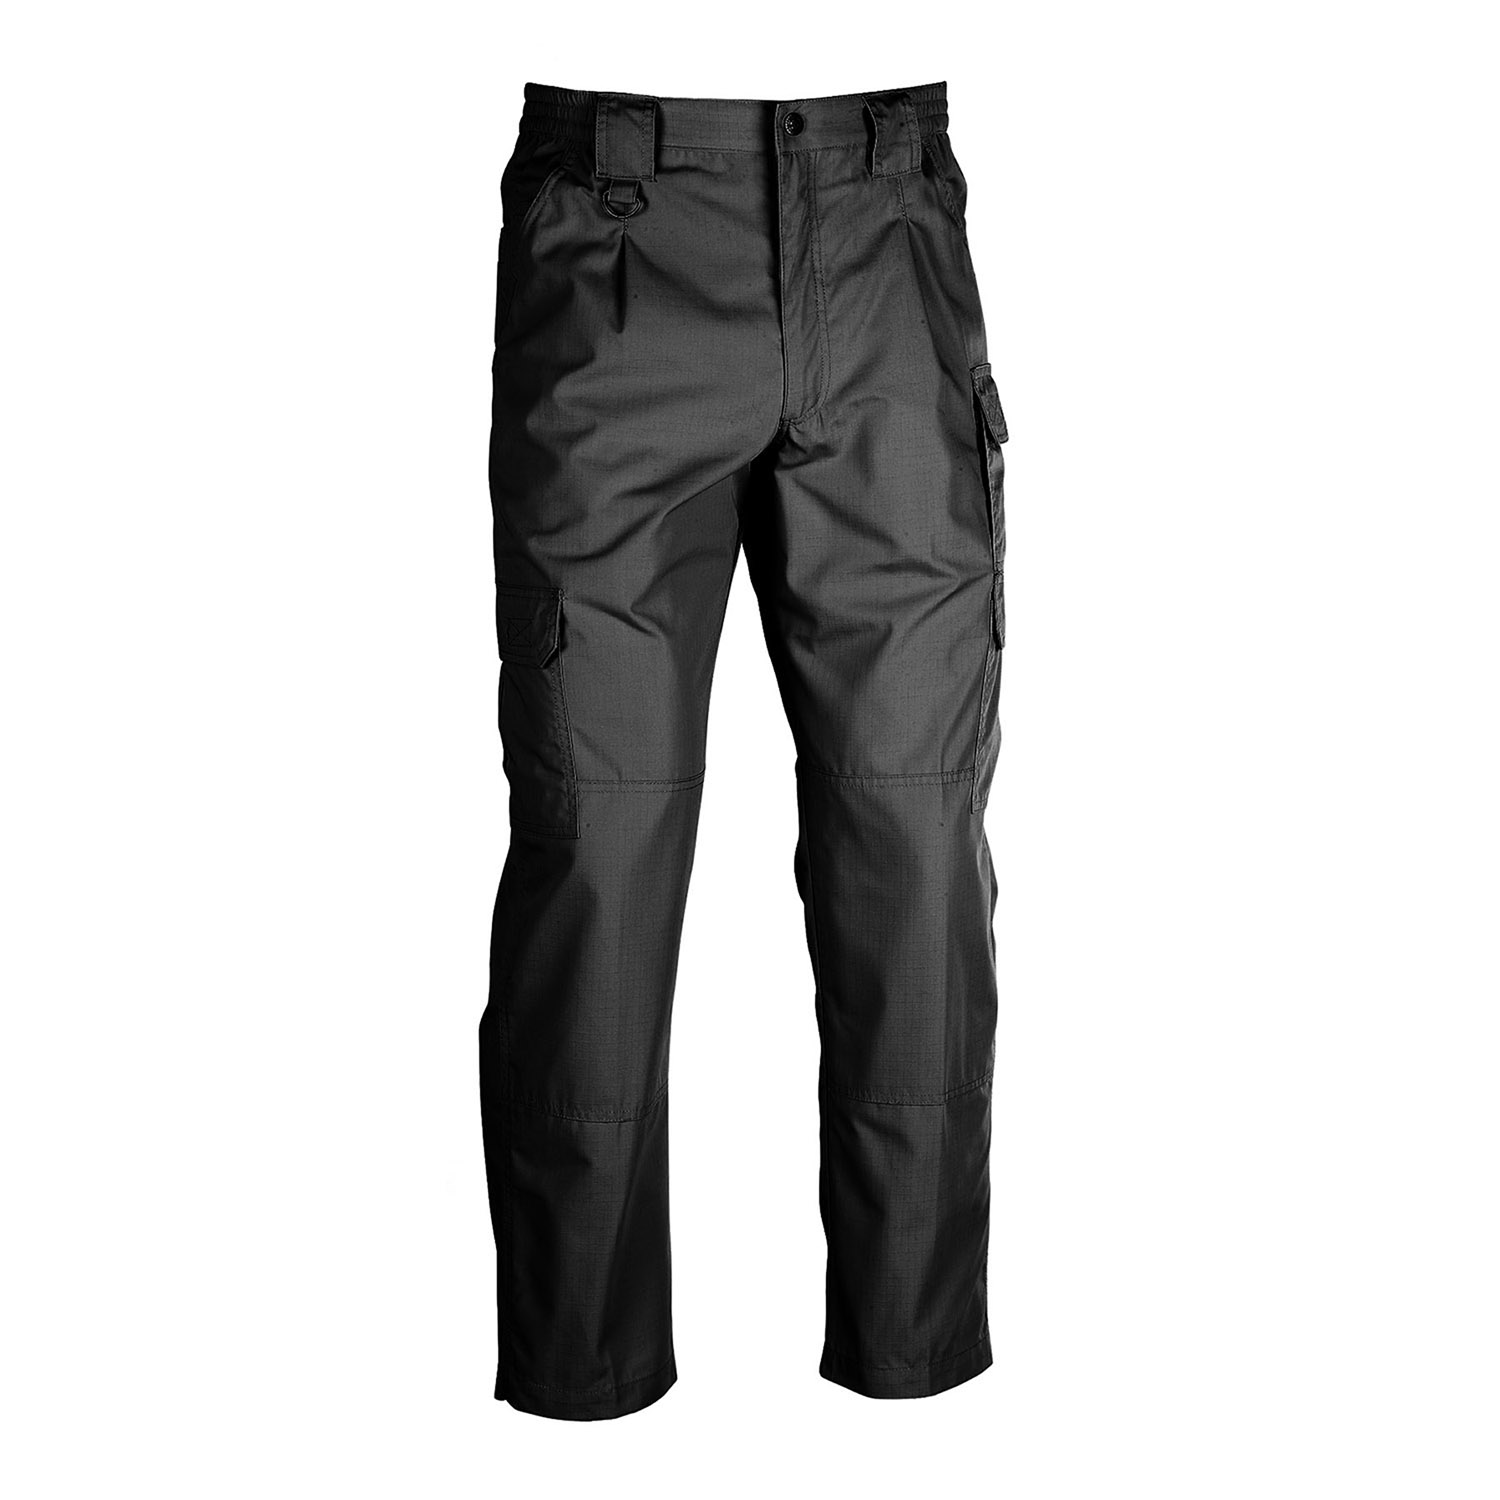 Propper Lightweight Women's Tactical Trousers